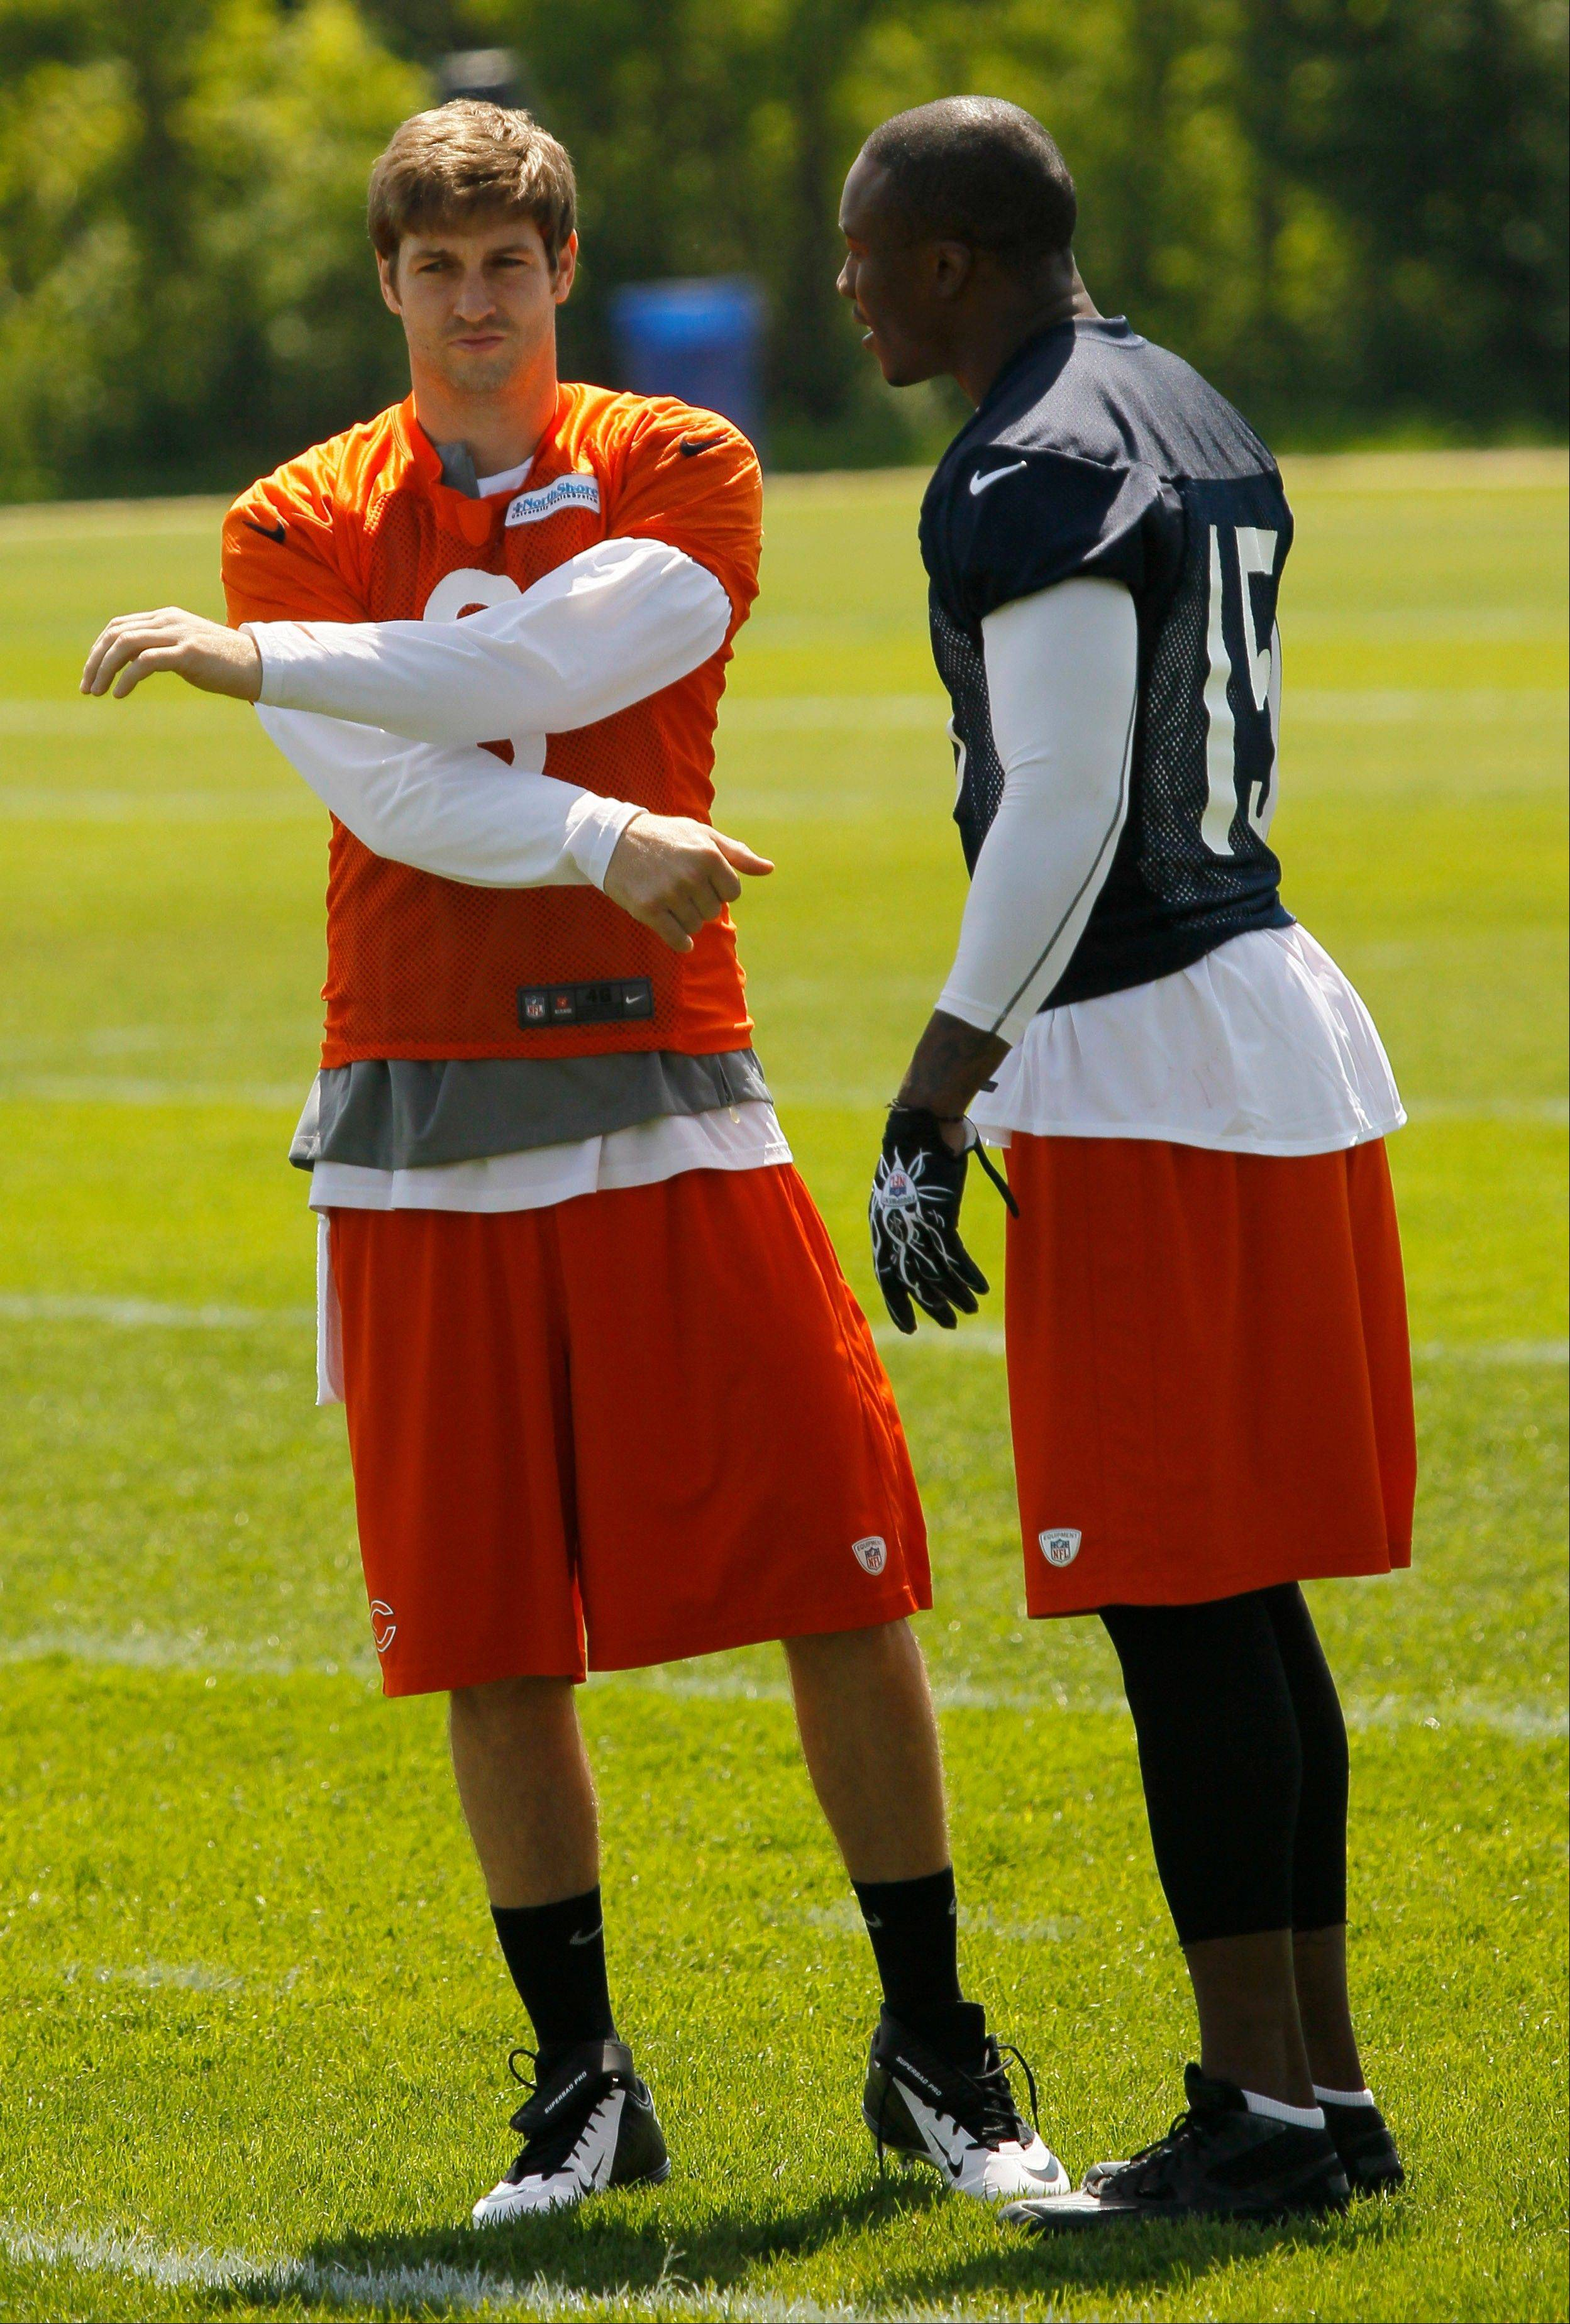 It's a vastly improved offense now for Bears quarterback Jay Cutler, left, with the addition of wide receiver Brandon Marshall. But some of the preseason expectations for the team might be a bit over the top.